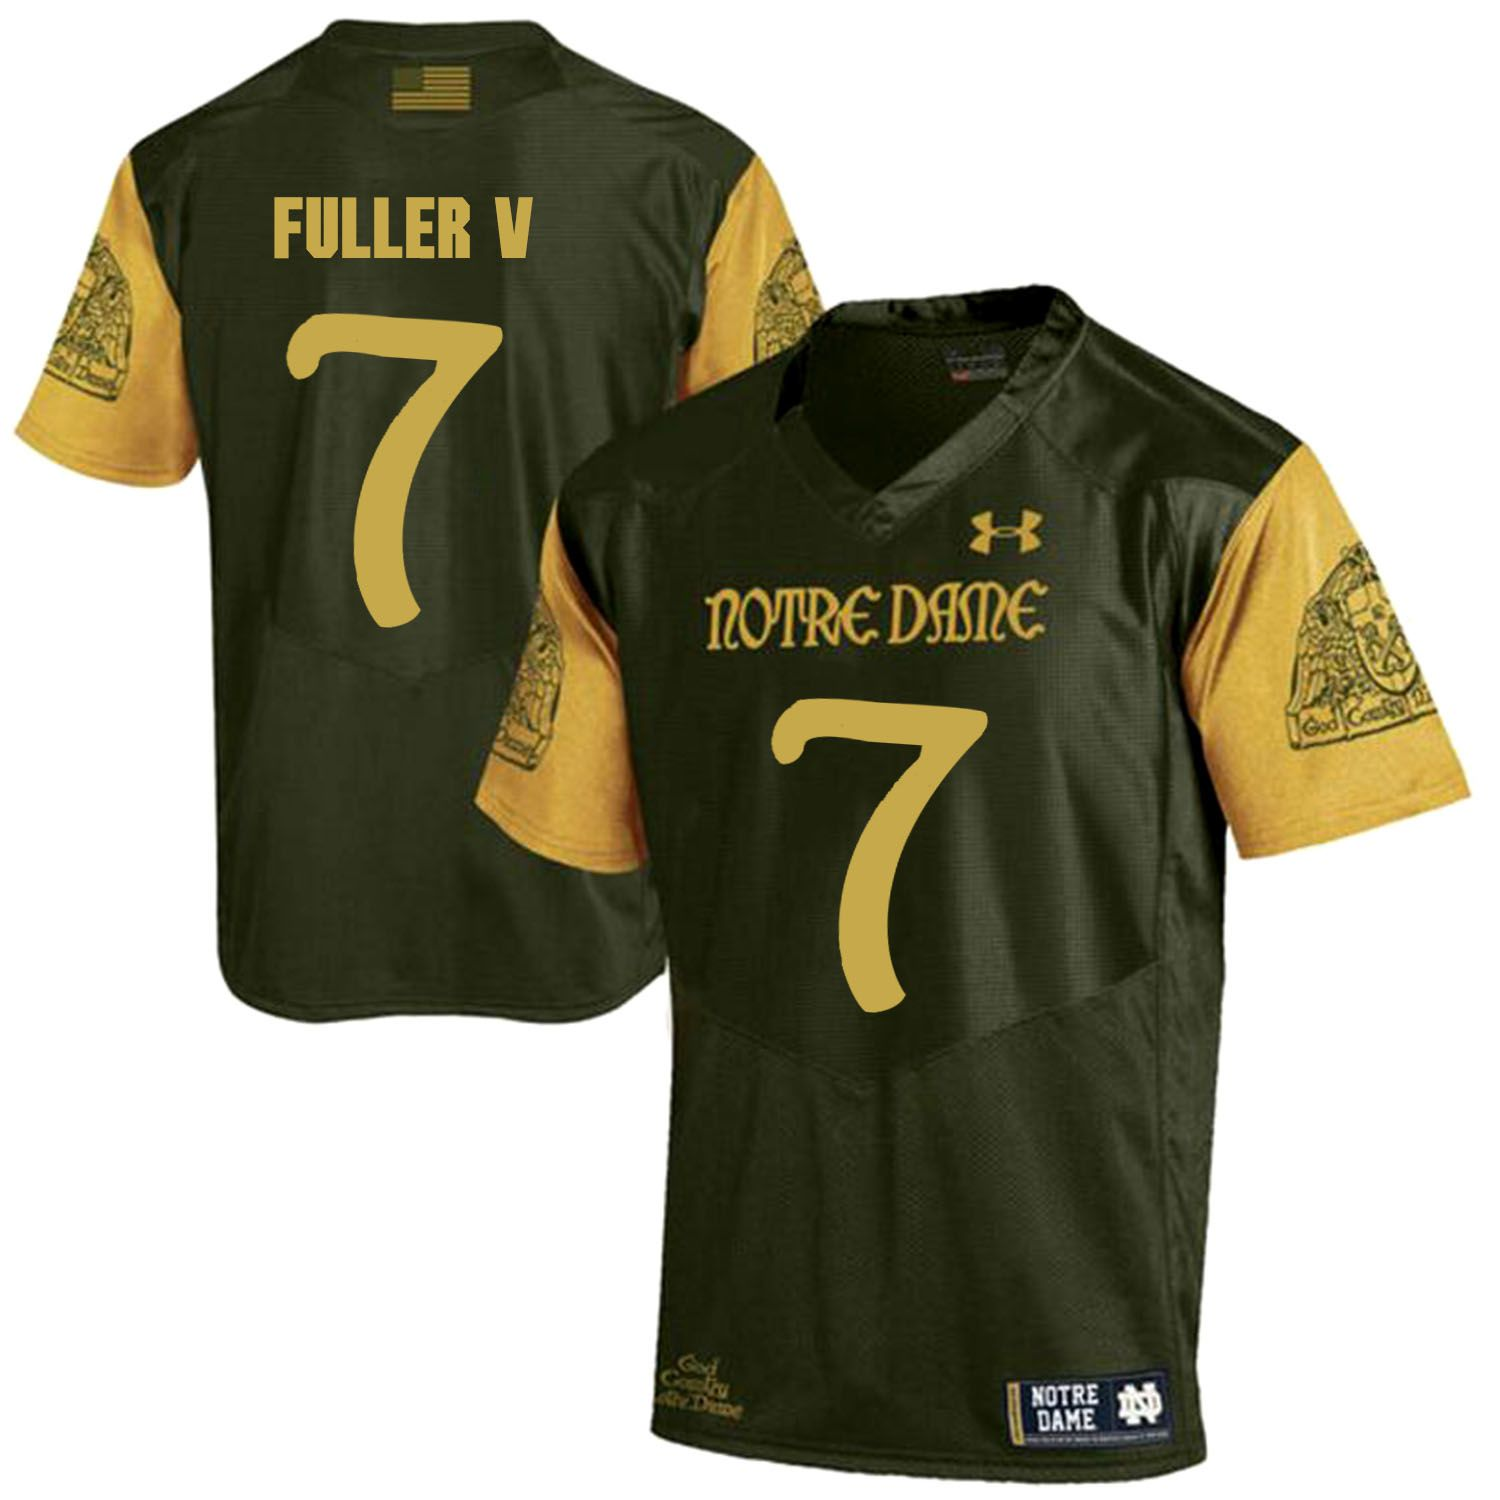 Men Norte Dame Fighting Irish 7 Fuller v Green Customized NCAA Jerseys